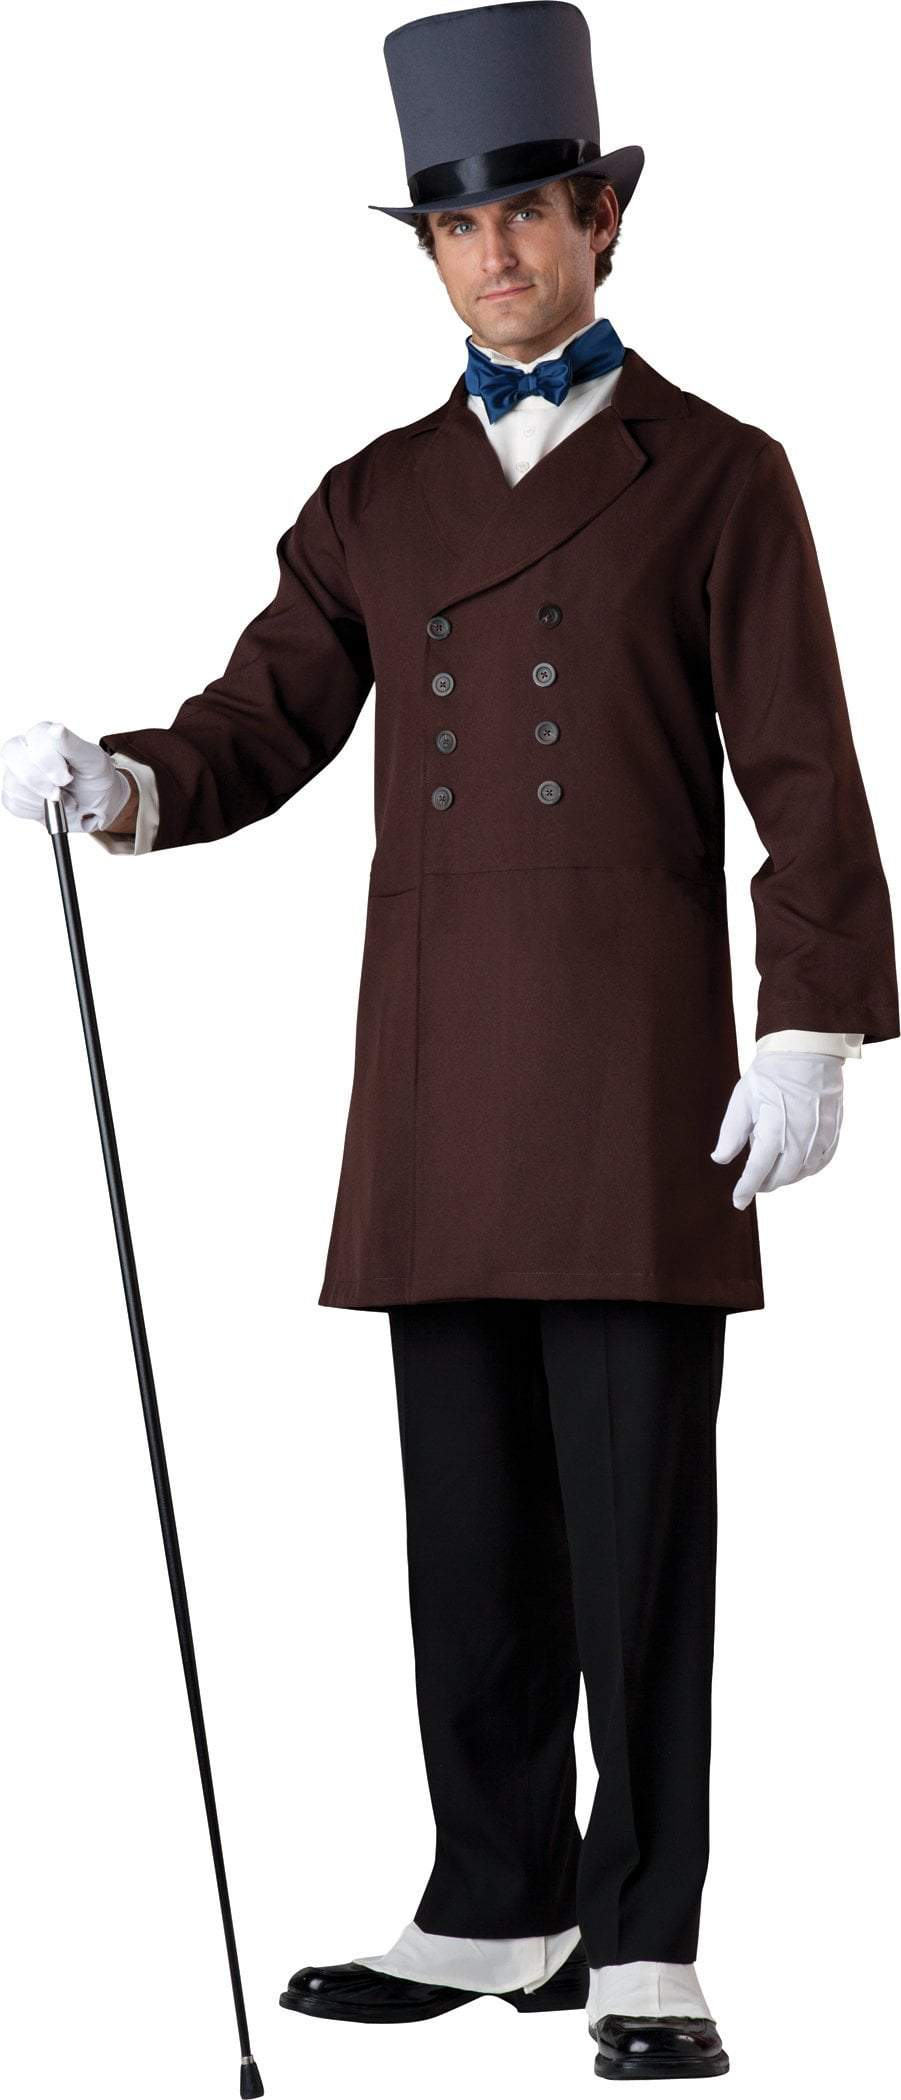 InCharacter Costumes LARGE Victorian Gentleman Deluxe Costume